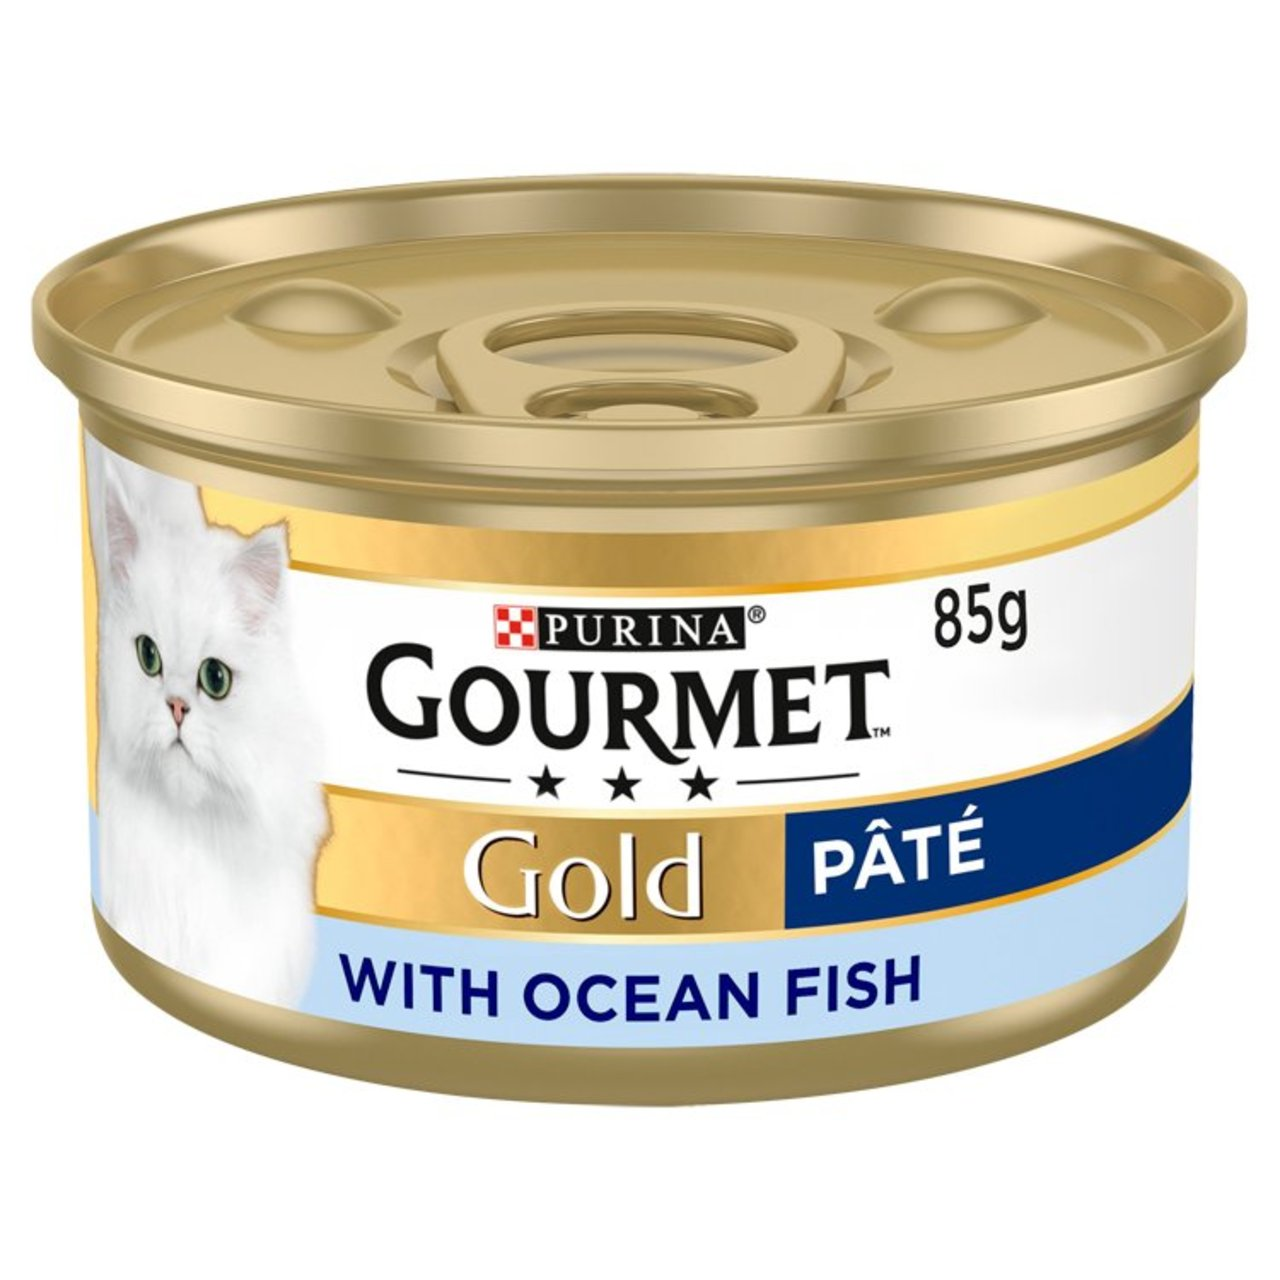 An image of Gourmet Gold Cat Food Pate with Ocean Fish